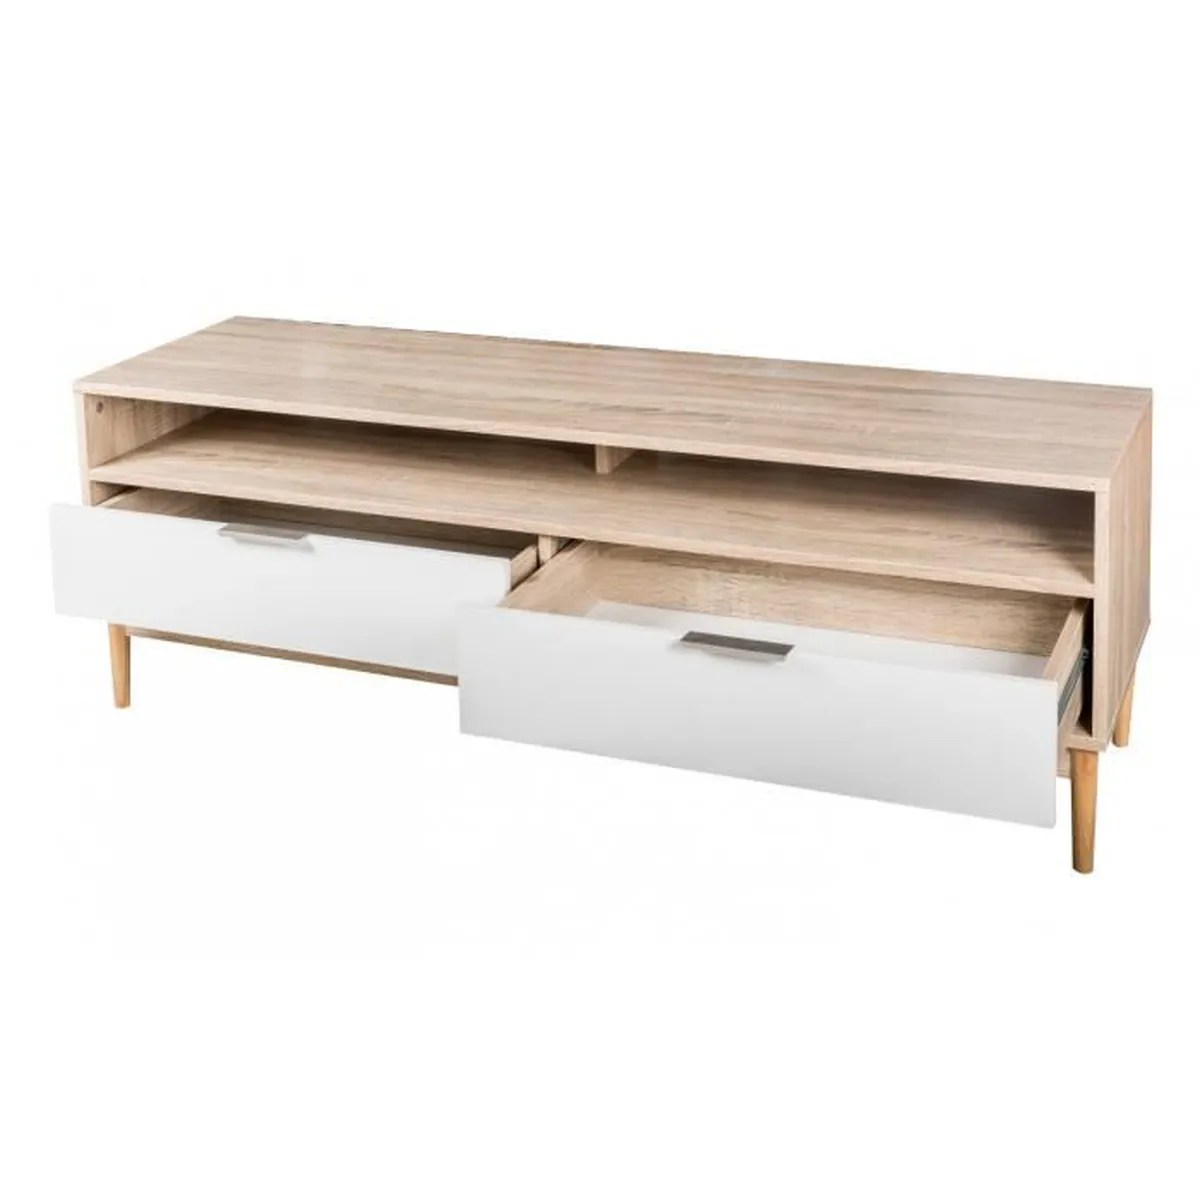 Meuble Tv Scandinave Gaby Sonoma Et Blanc Meuble Scandinave Gaby Weber Industries Home Bahut 2